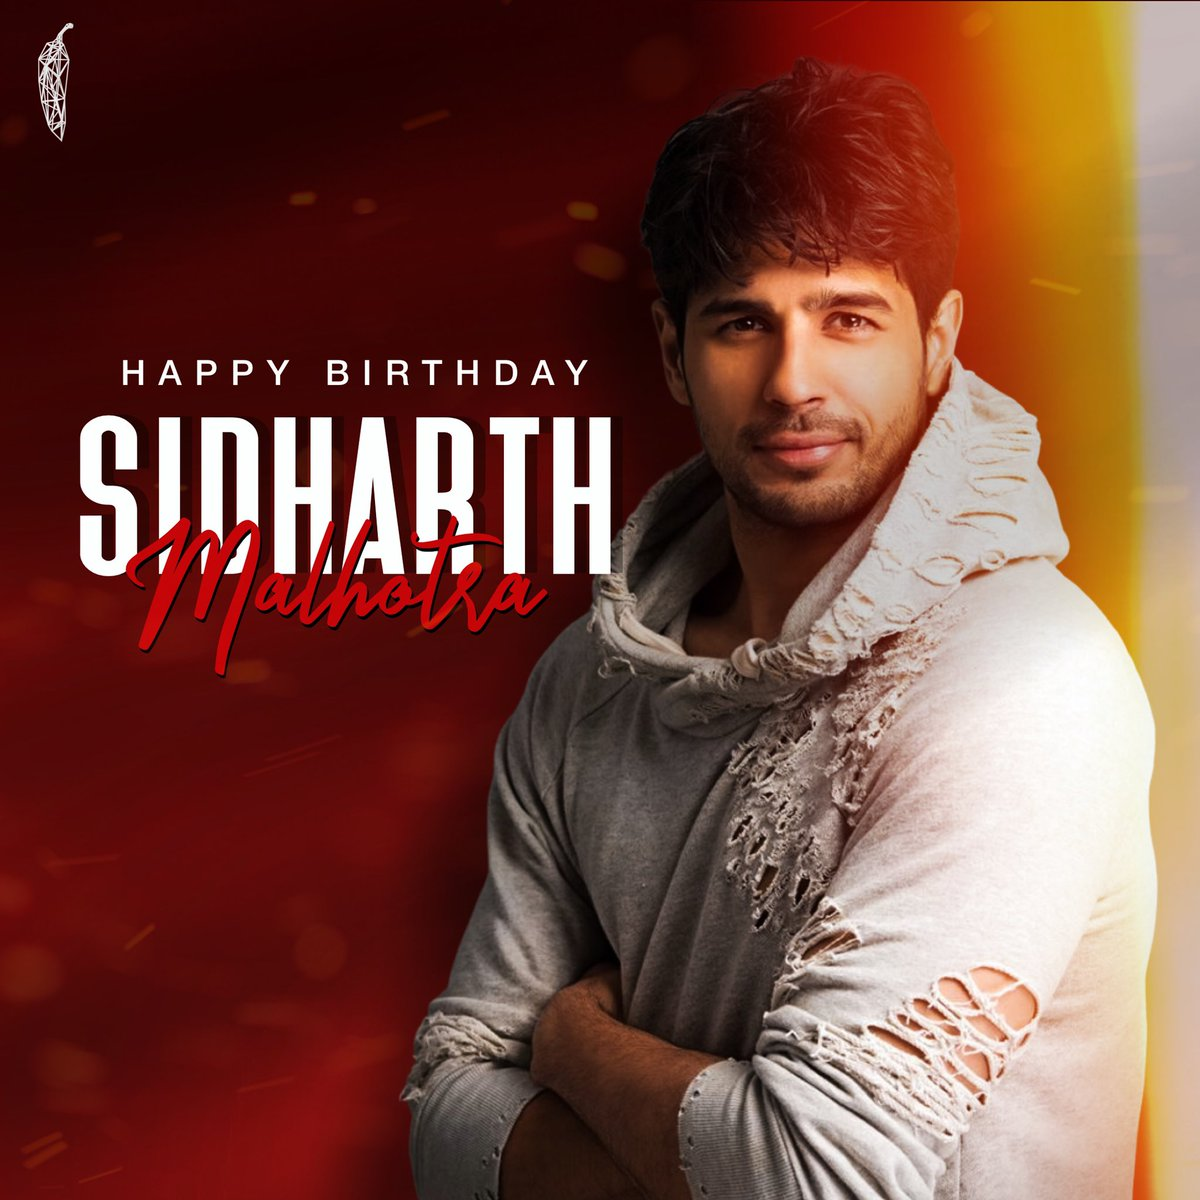 Saturday vibes are stronger as we toast to the birthday of the charming @SidMalhotra ! Always inspiring us with his calm demeanor and dedication to craft! Wishing him a fabulous year ahead.  - 🌶🎂🎁🎉  #HappyBirthdaySidharthMalhotra